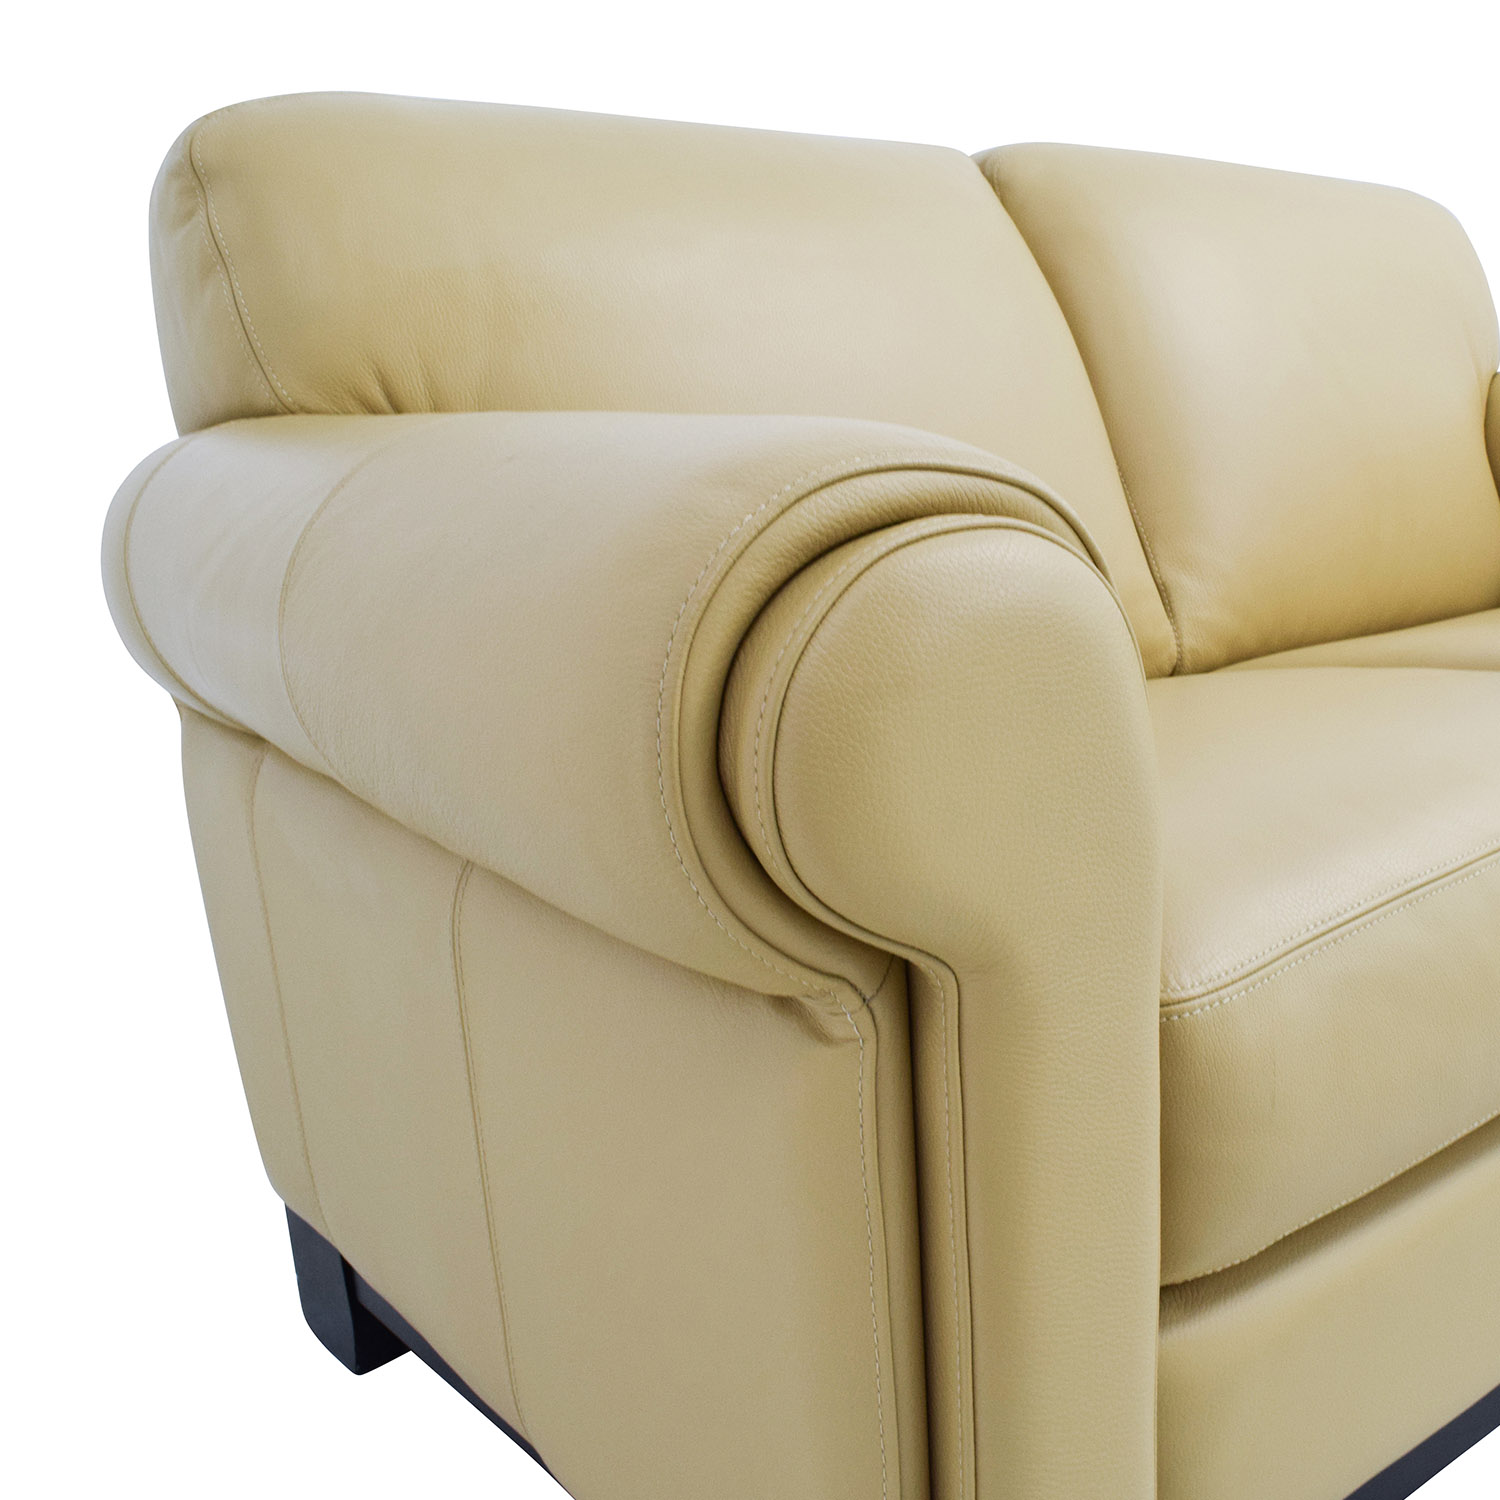 34% OFF Chateau D Ax Chateau D Ax Beige Leather Two seat Cushion